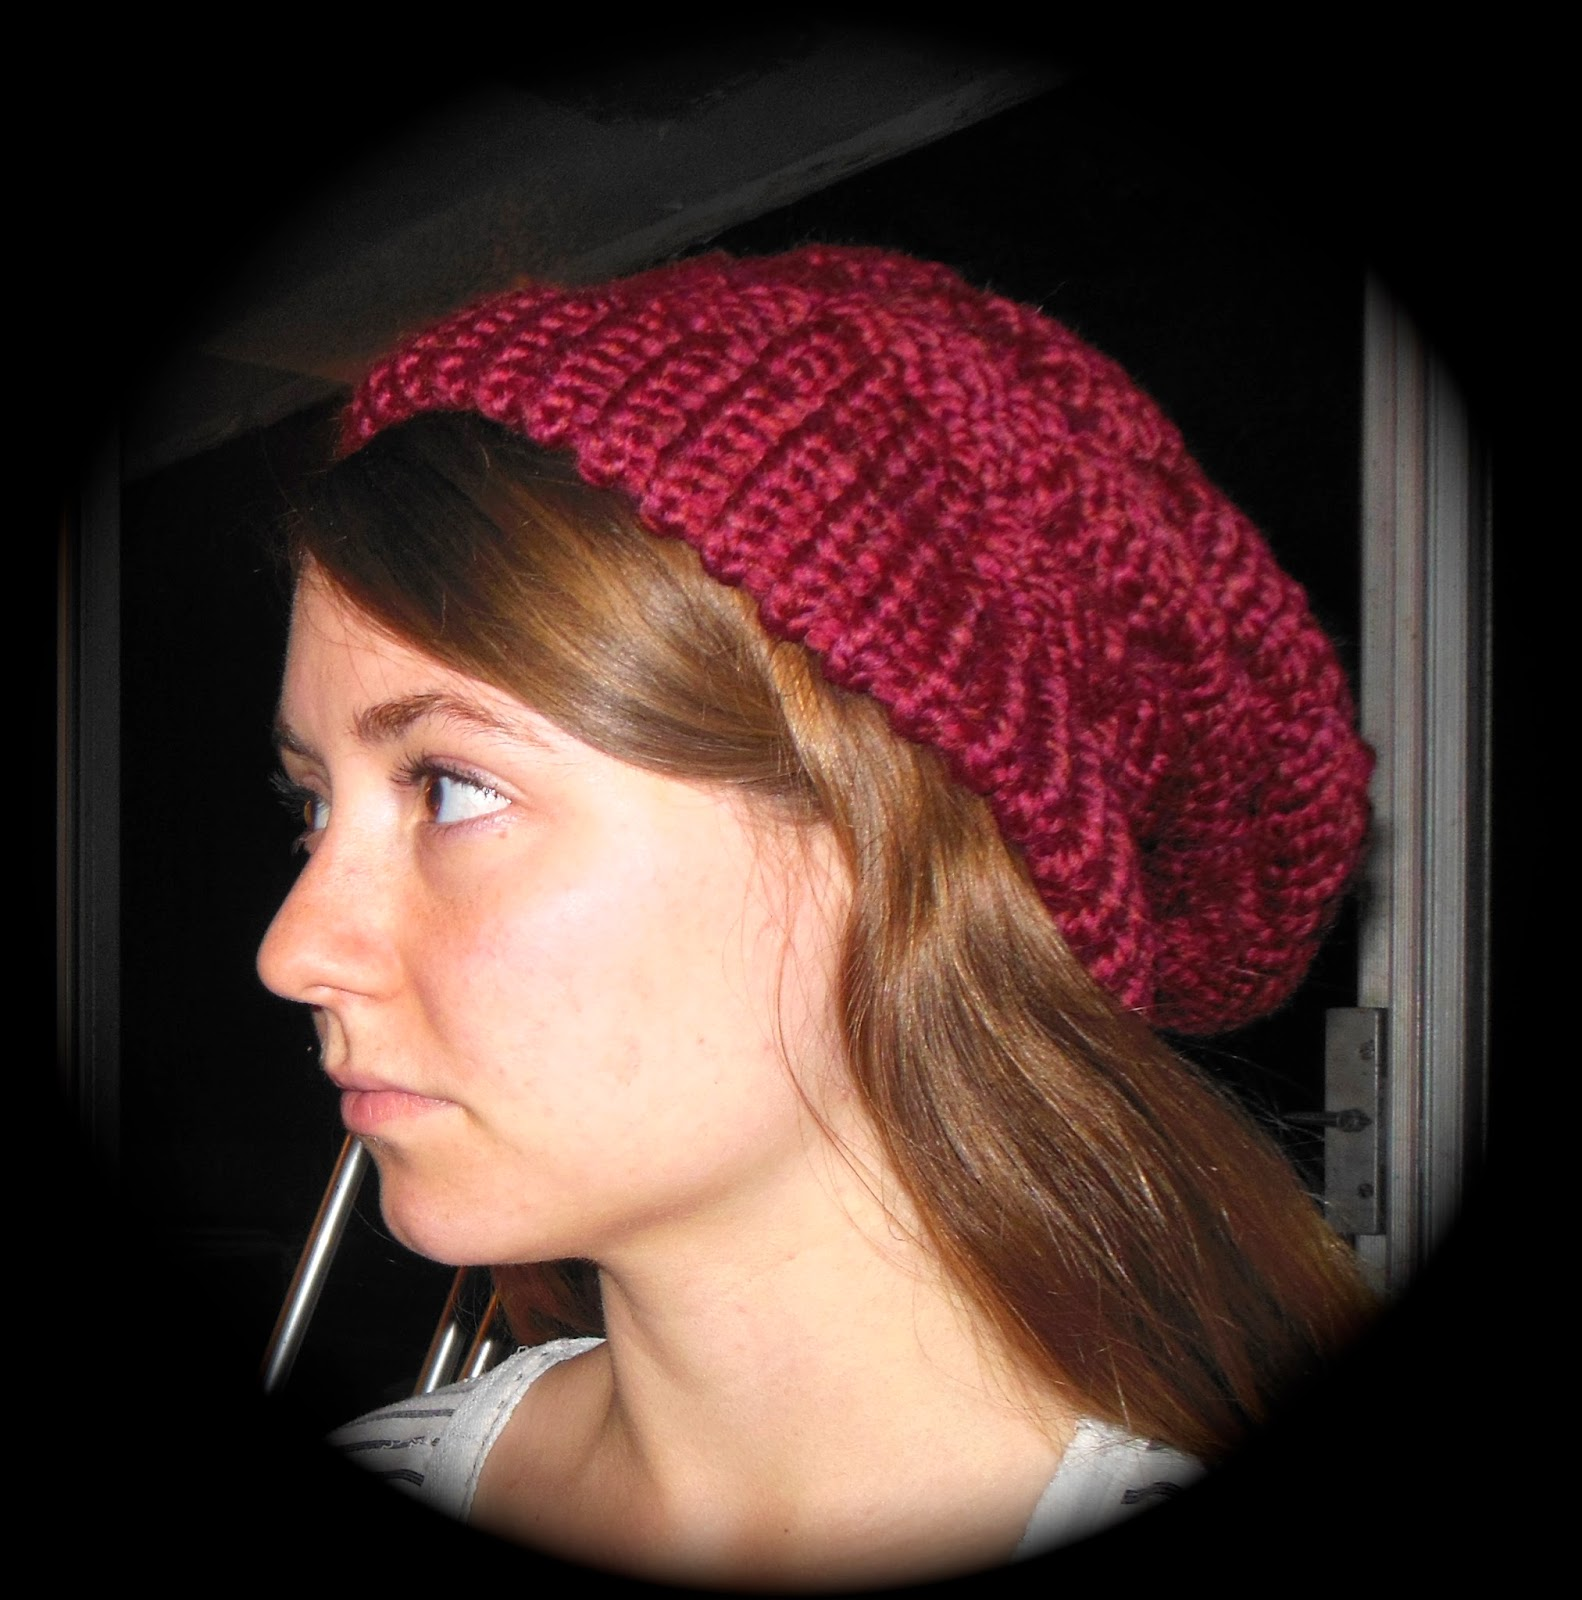 How To Loom Knit A Basket Weave Hat : Kate and fleet loom knitting slouchy basket weave beanie